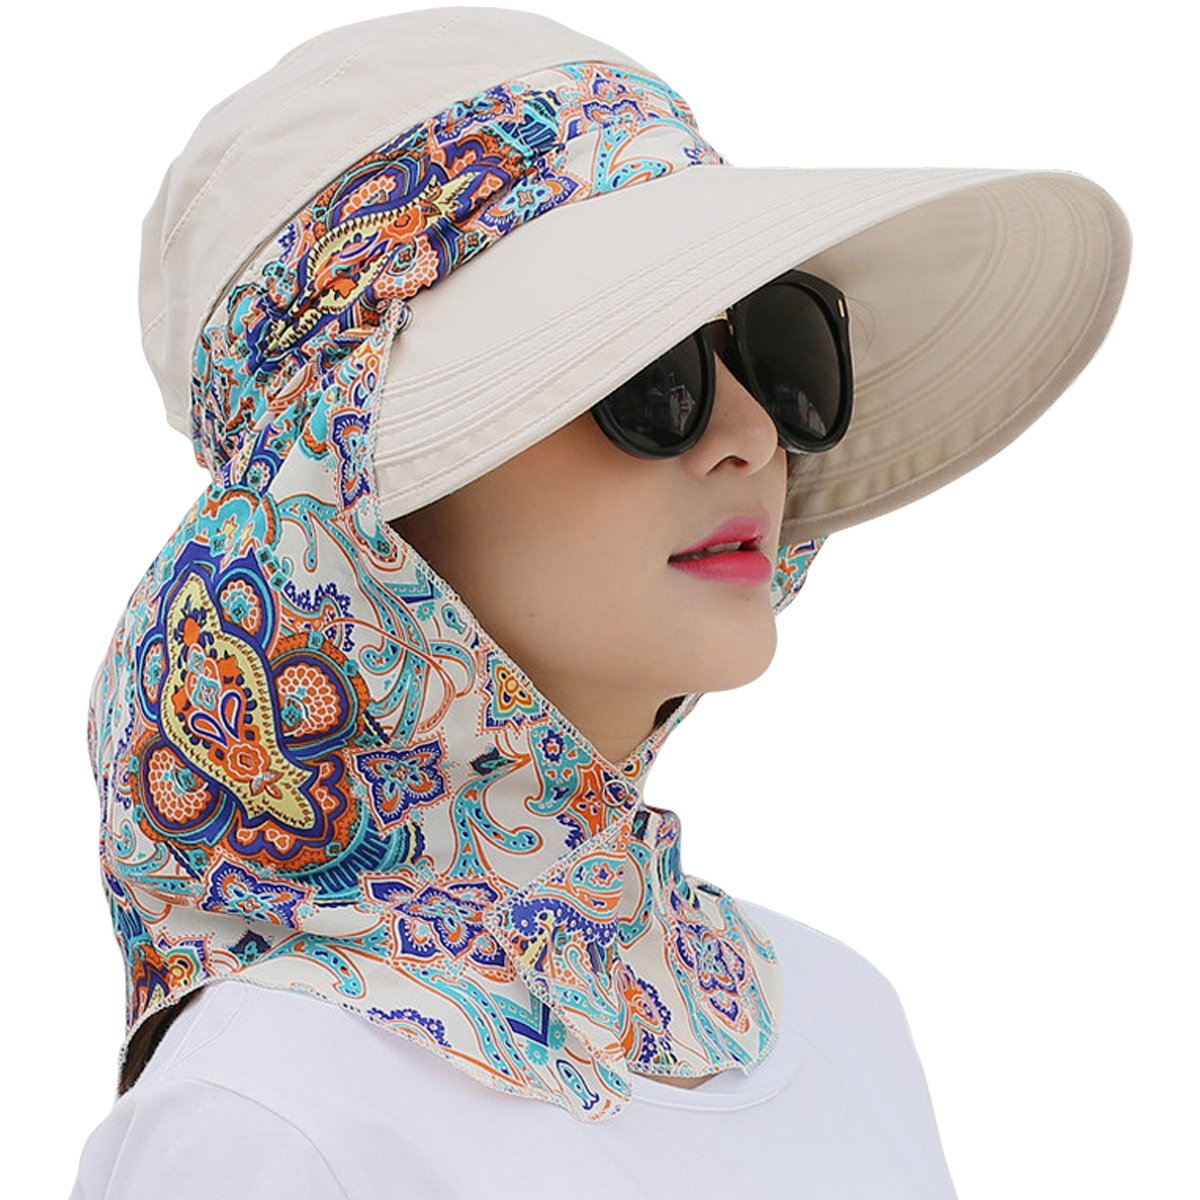 86148cf57a4 2017 HOT New Fashion UV Protection Summer Sun Hats. Make you more charming  and adorable in summer!